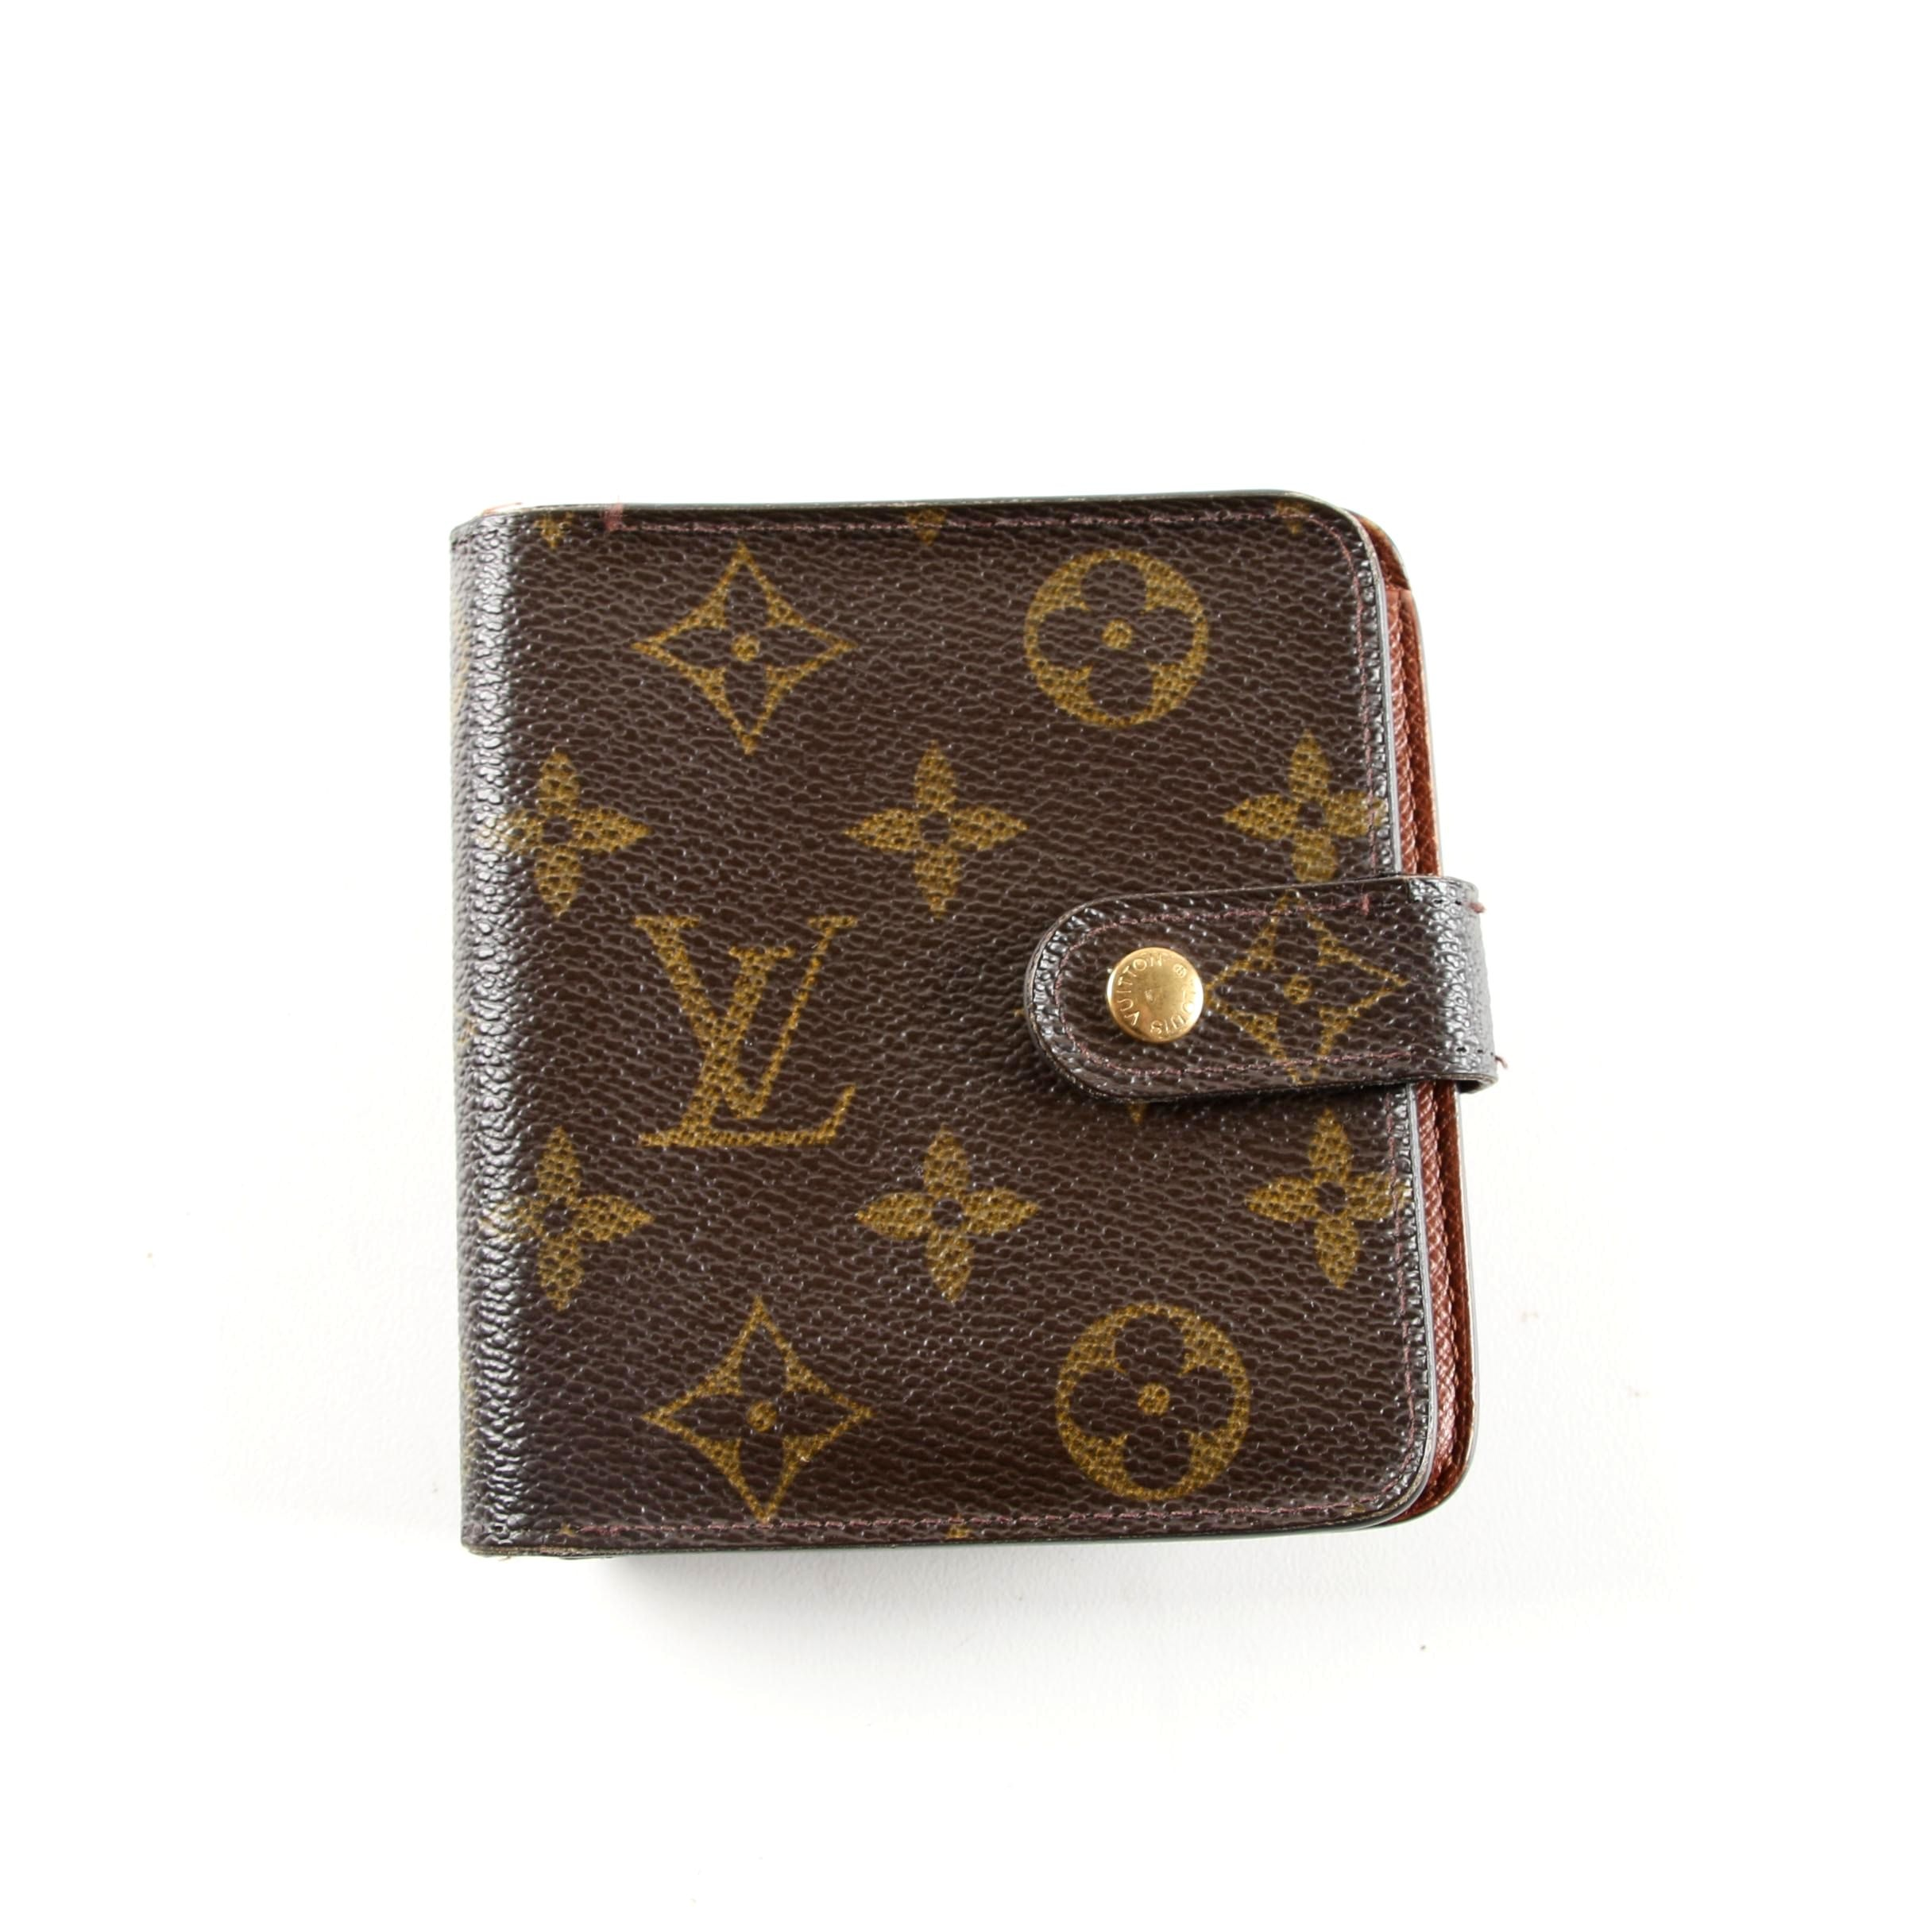 Louis Vuitton of Paris Monogram Zip Bifold Wallet